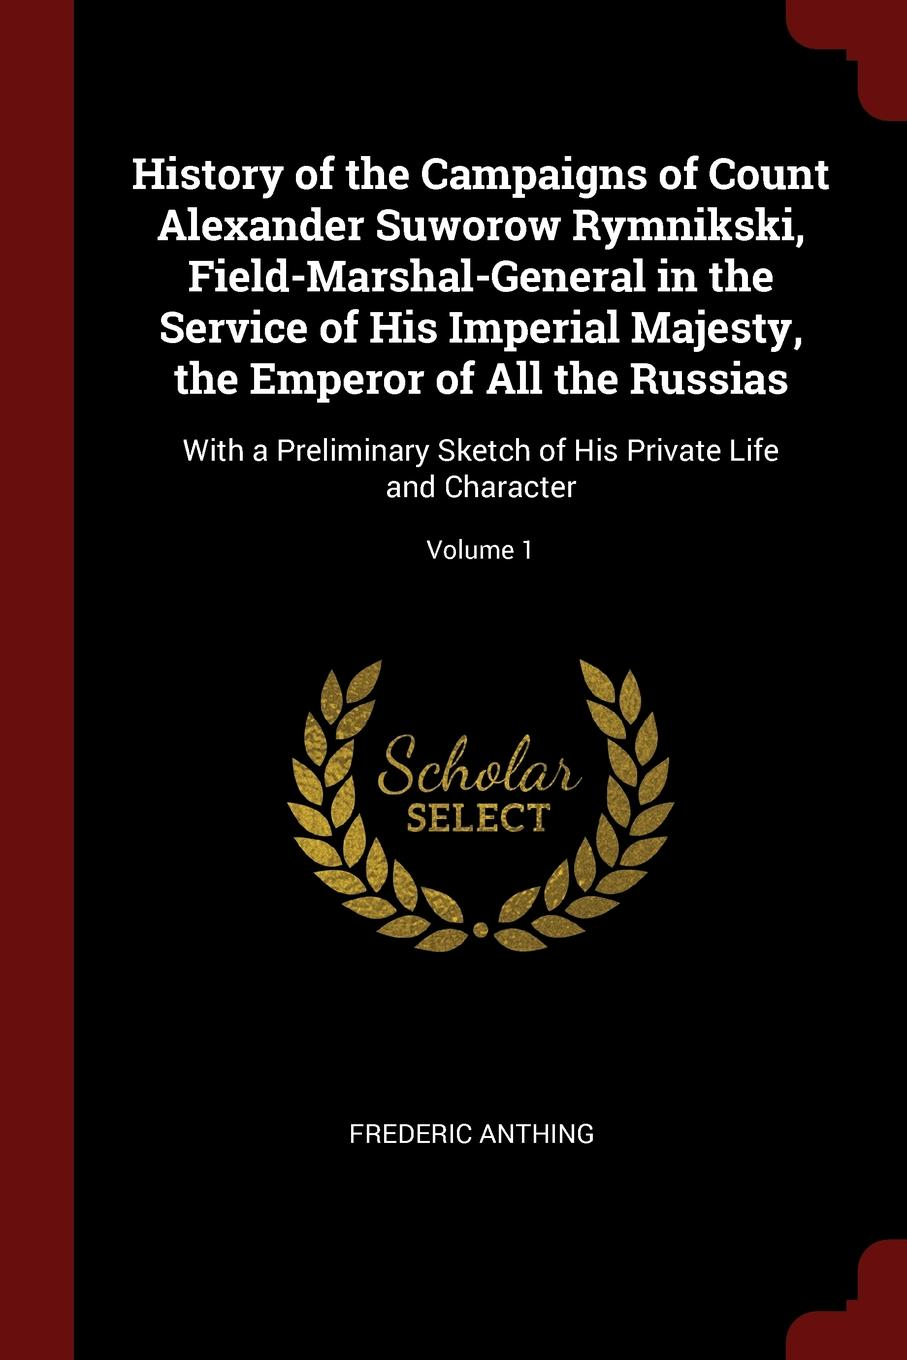 Frederic Anthing History of the Campaigns of Count Alexander Suworow Rymnikski, Field-Marshal-General in the Service of His Imperial Majesty, the Emperor of All the Russias. With a Preliminary Sketch of His Private Life and Character; Volume 1 цена и фото